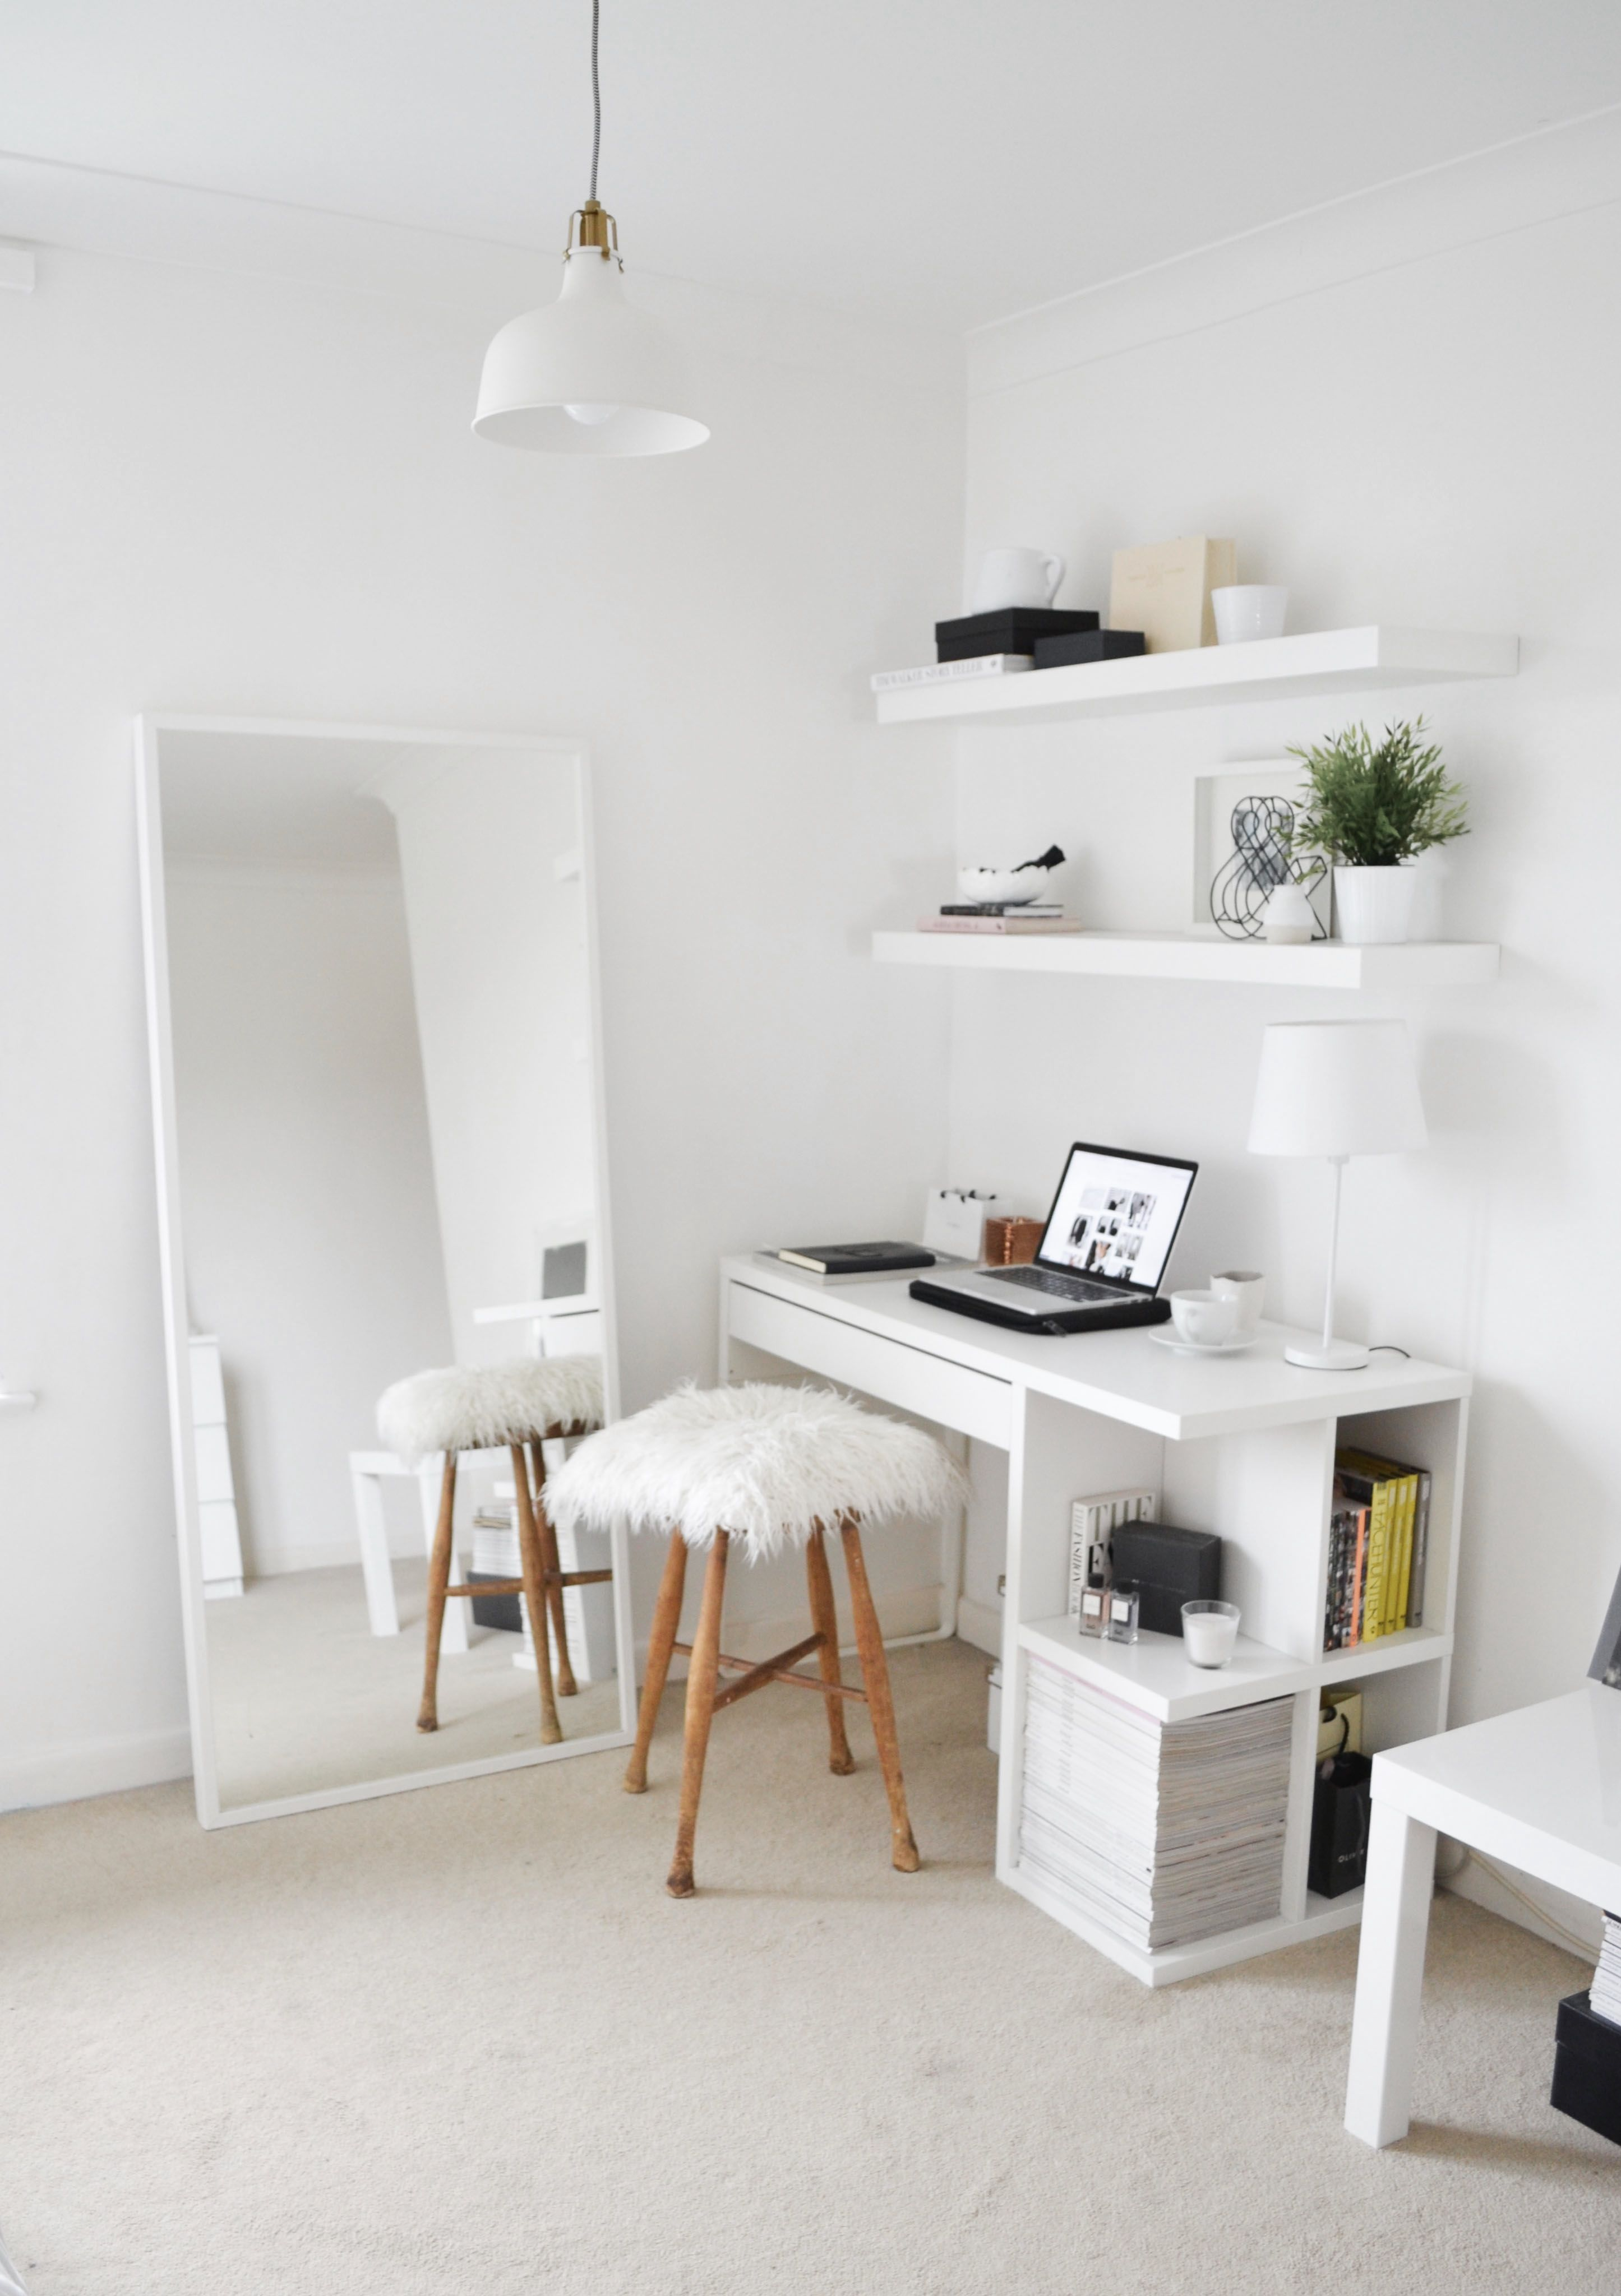 Minimal bedroom interior styling. White ikea furniture, floating ...